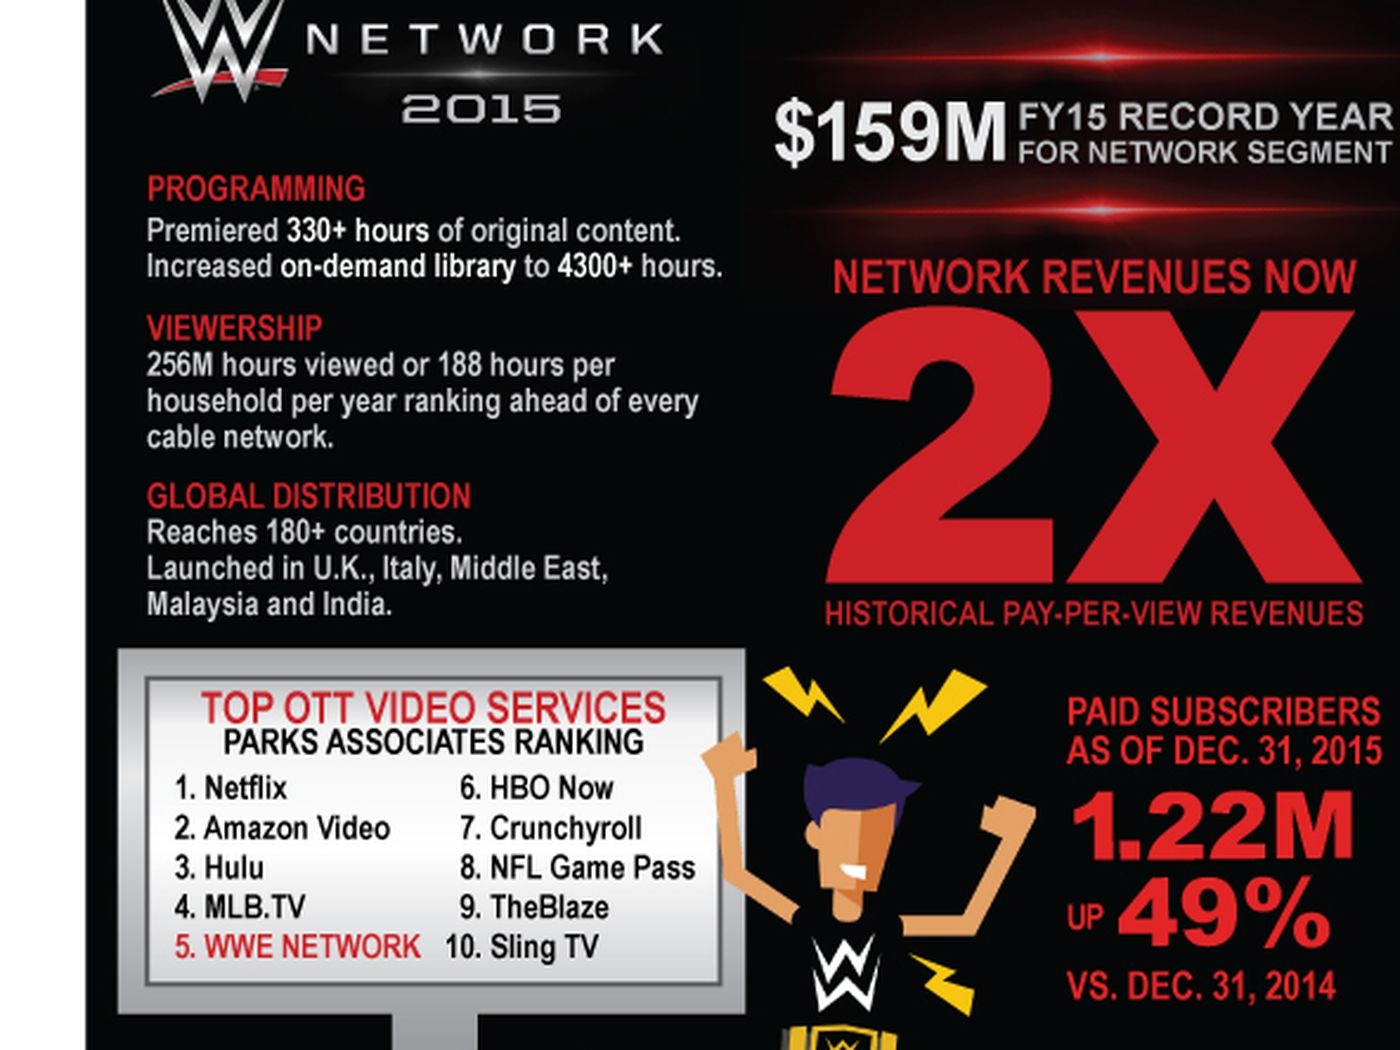 Increased overall and Network revenue highlight WWE fourth